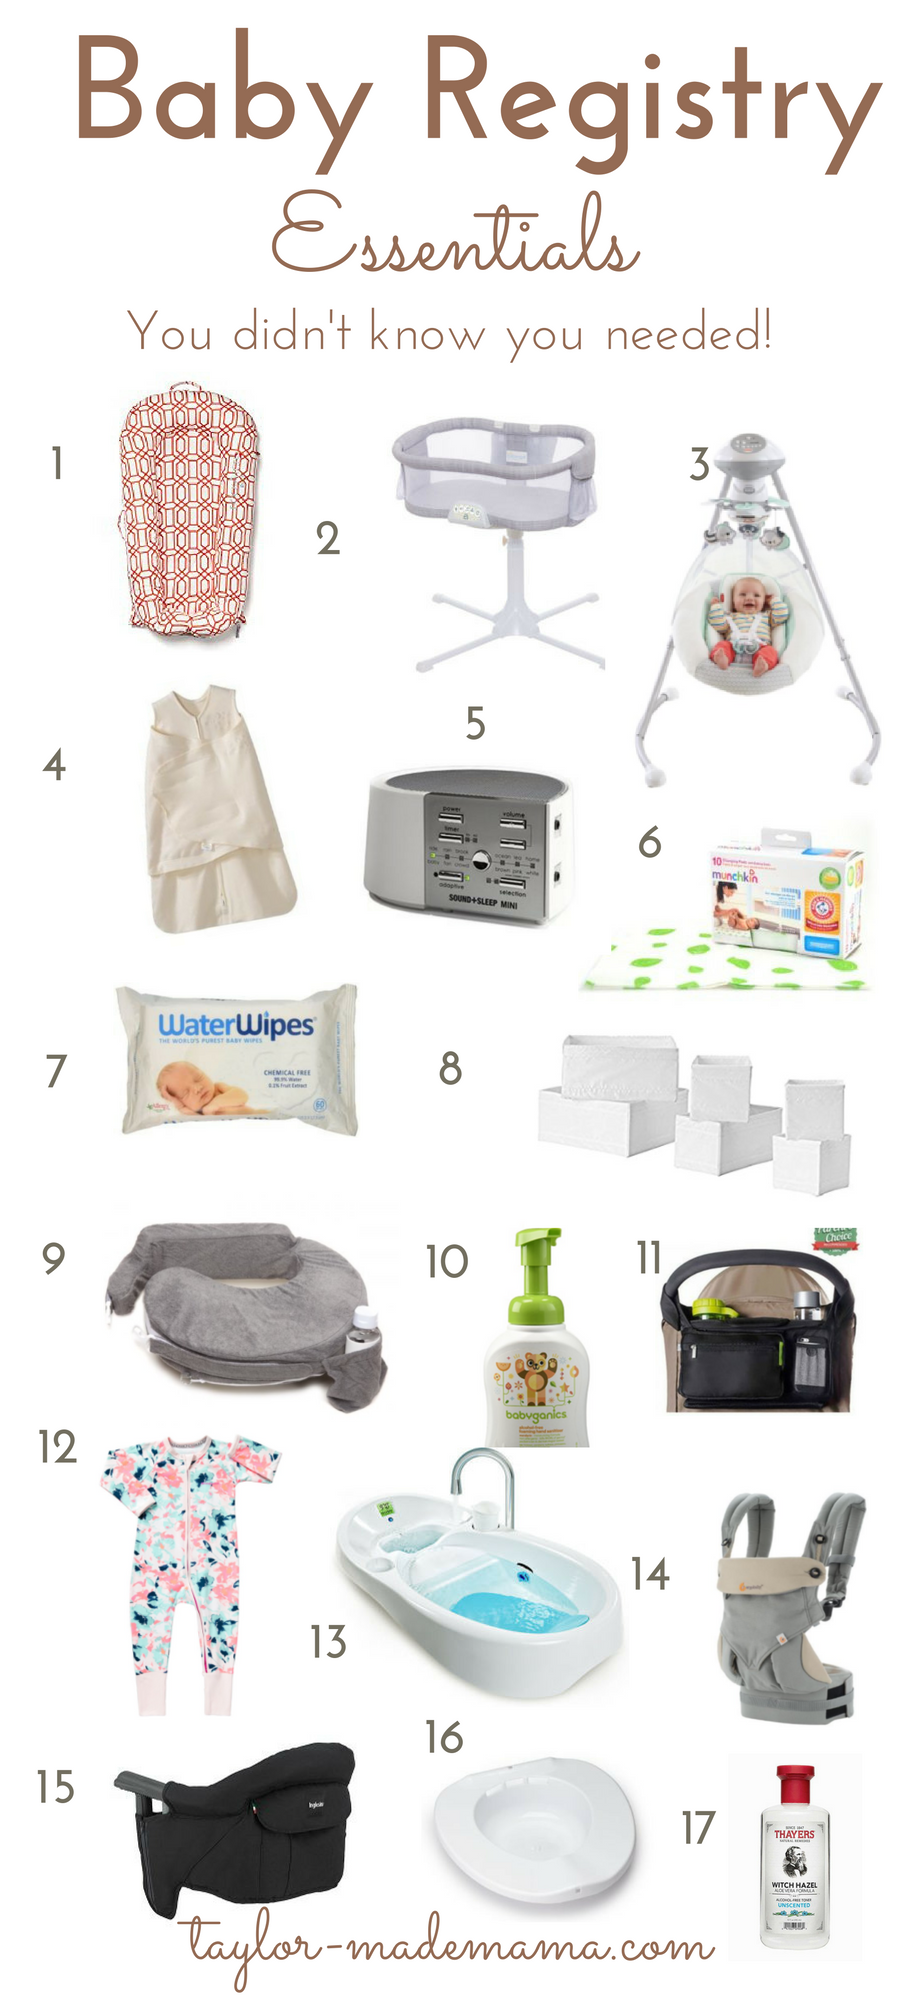 Baby Registry Essentials None Of The Stuff You Won T Need Baby Registry Essentials Baby Registry List Baby Registry